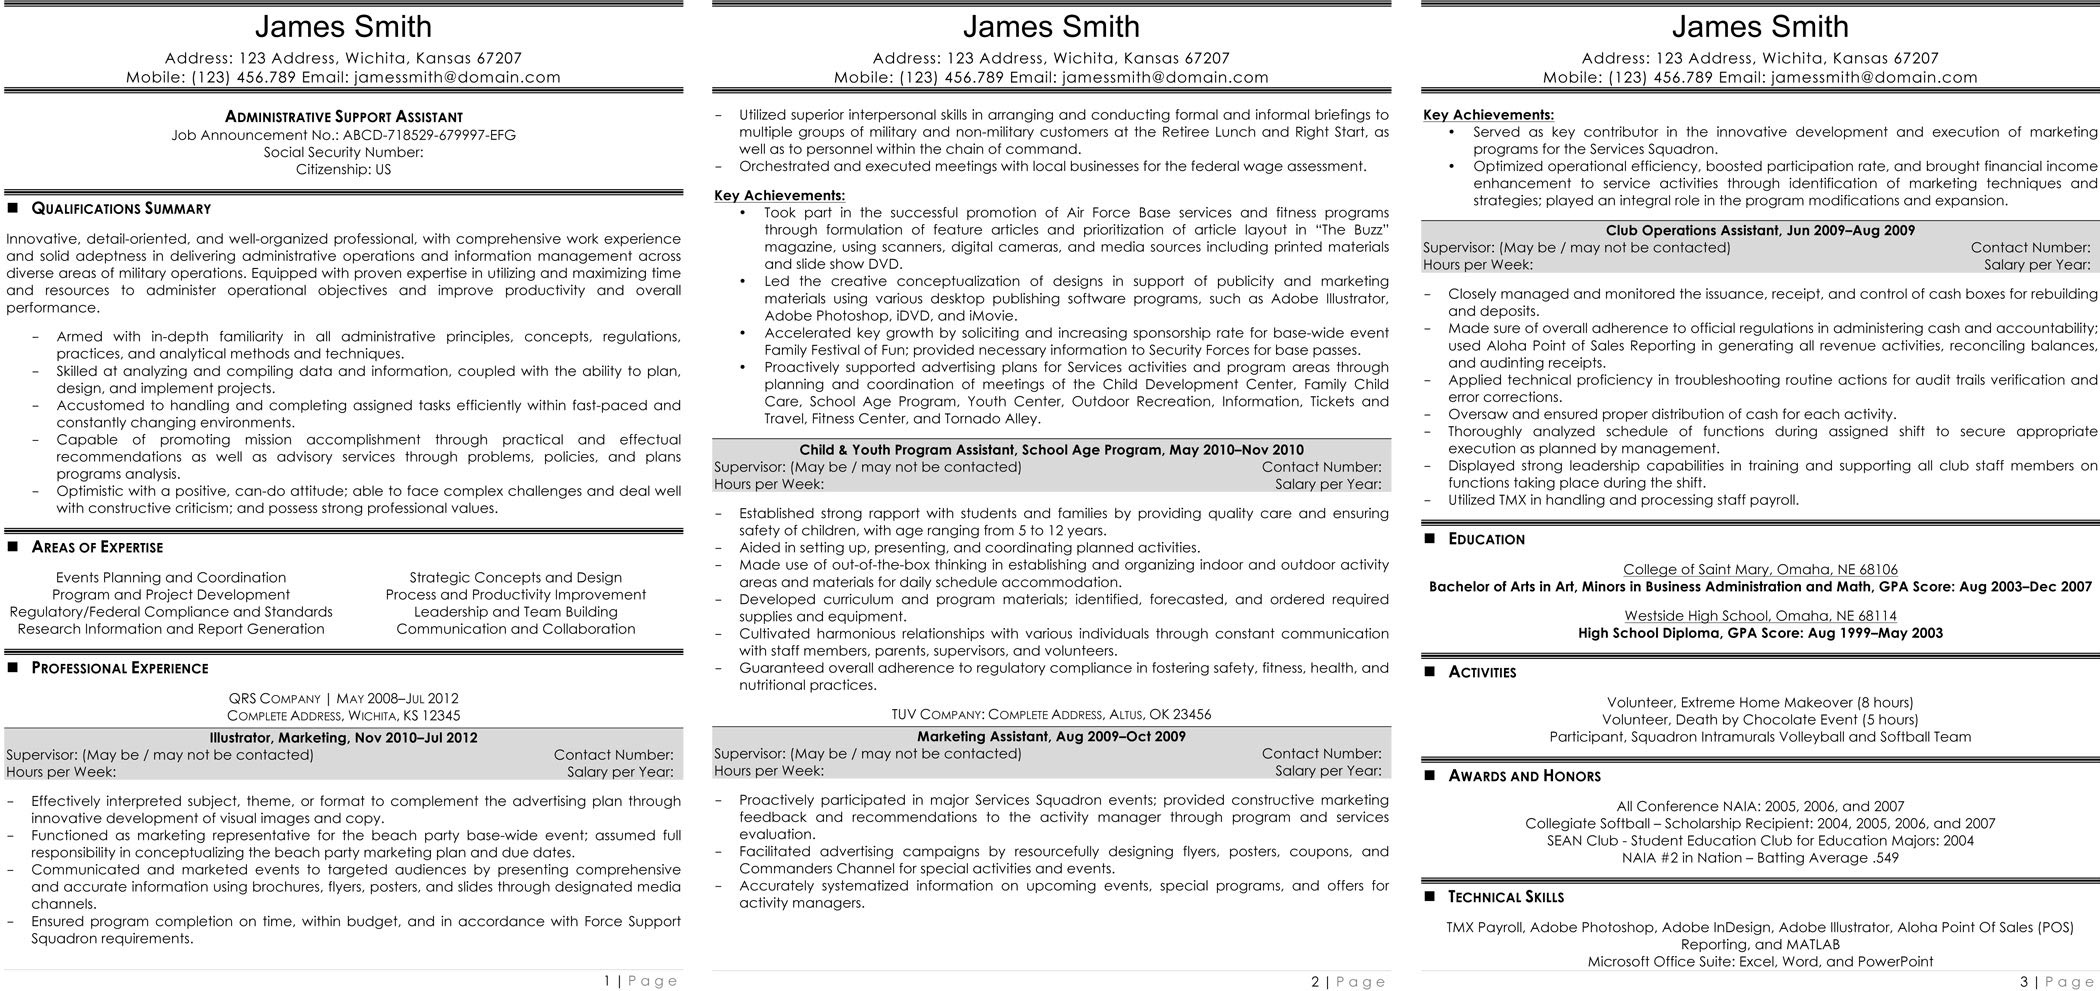 Federal Resume certified federal resume sample Administrative Support Assistant Resume